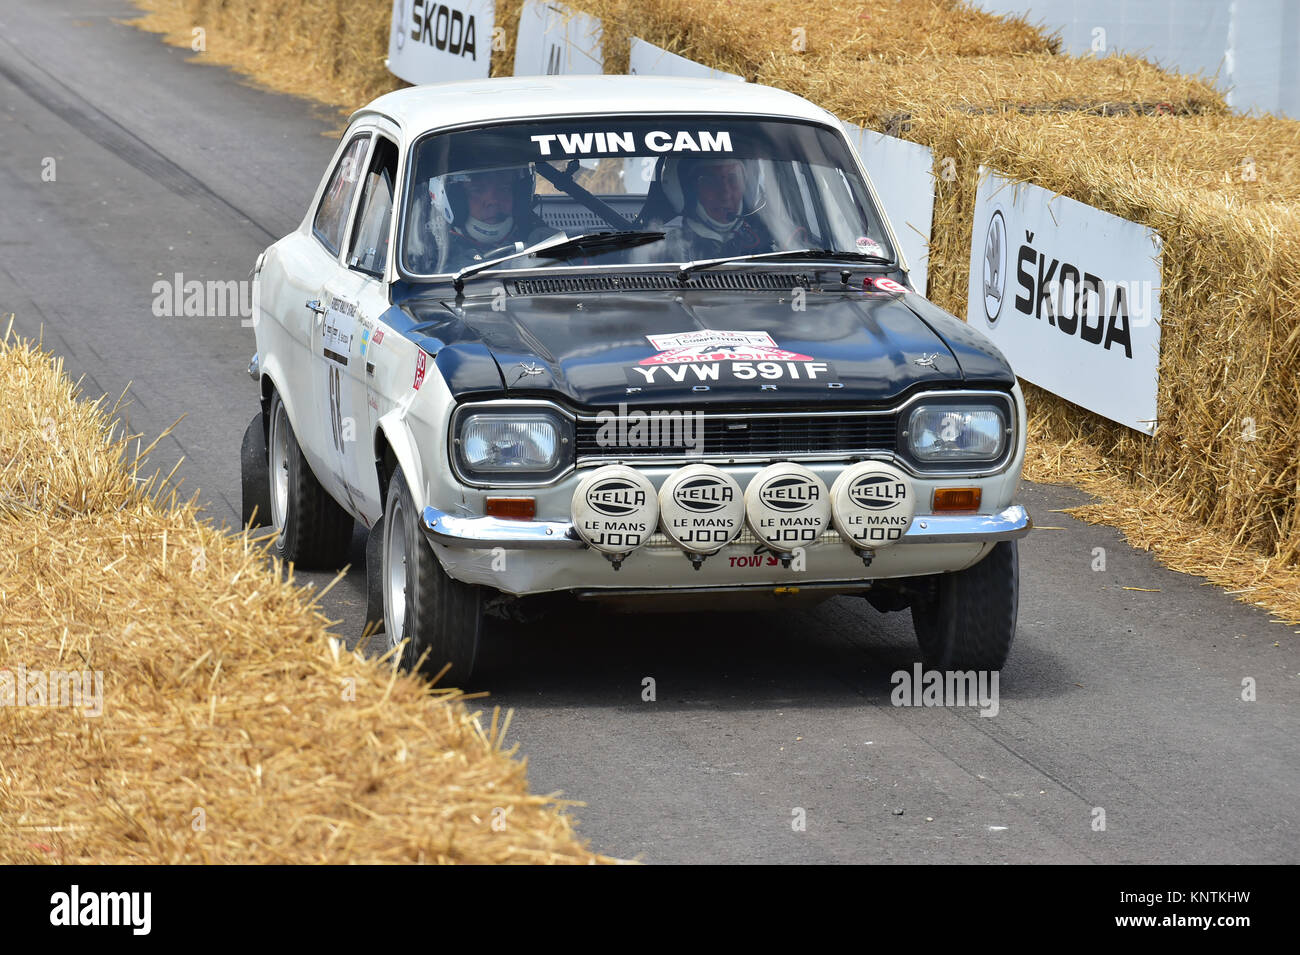 Dave Watkins, Ford Escort Twin Cam, YVW 591 F, Goodwood Festival of ...